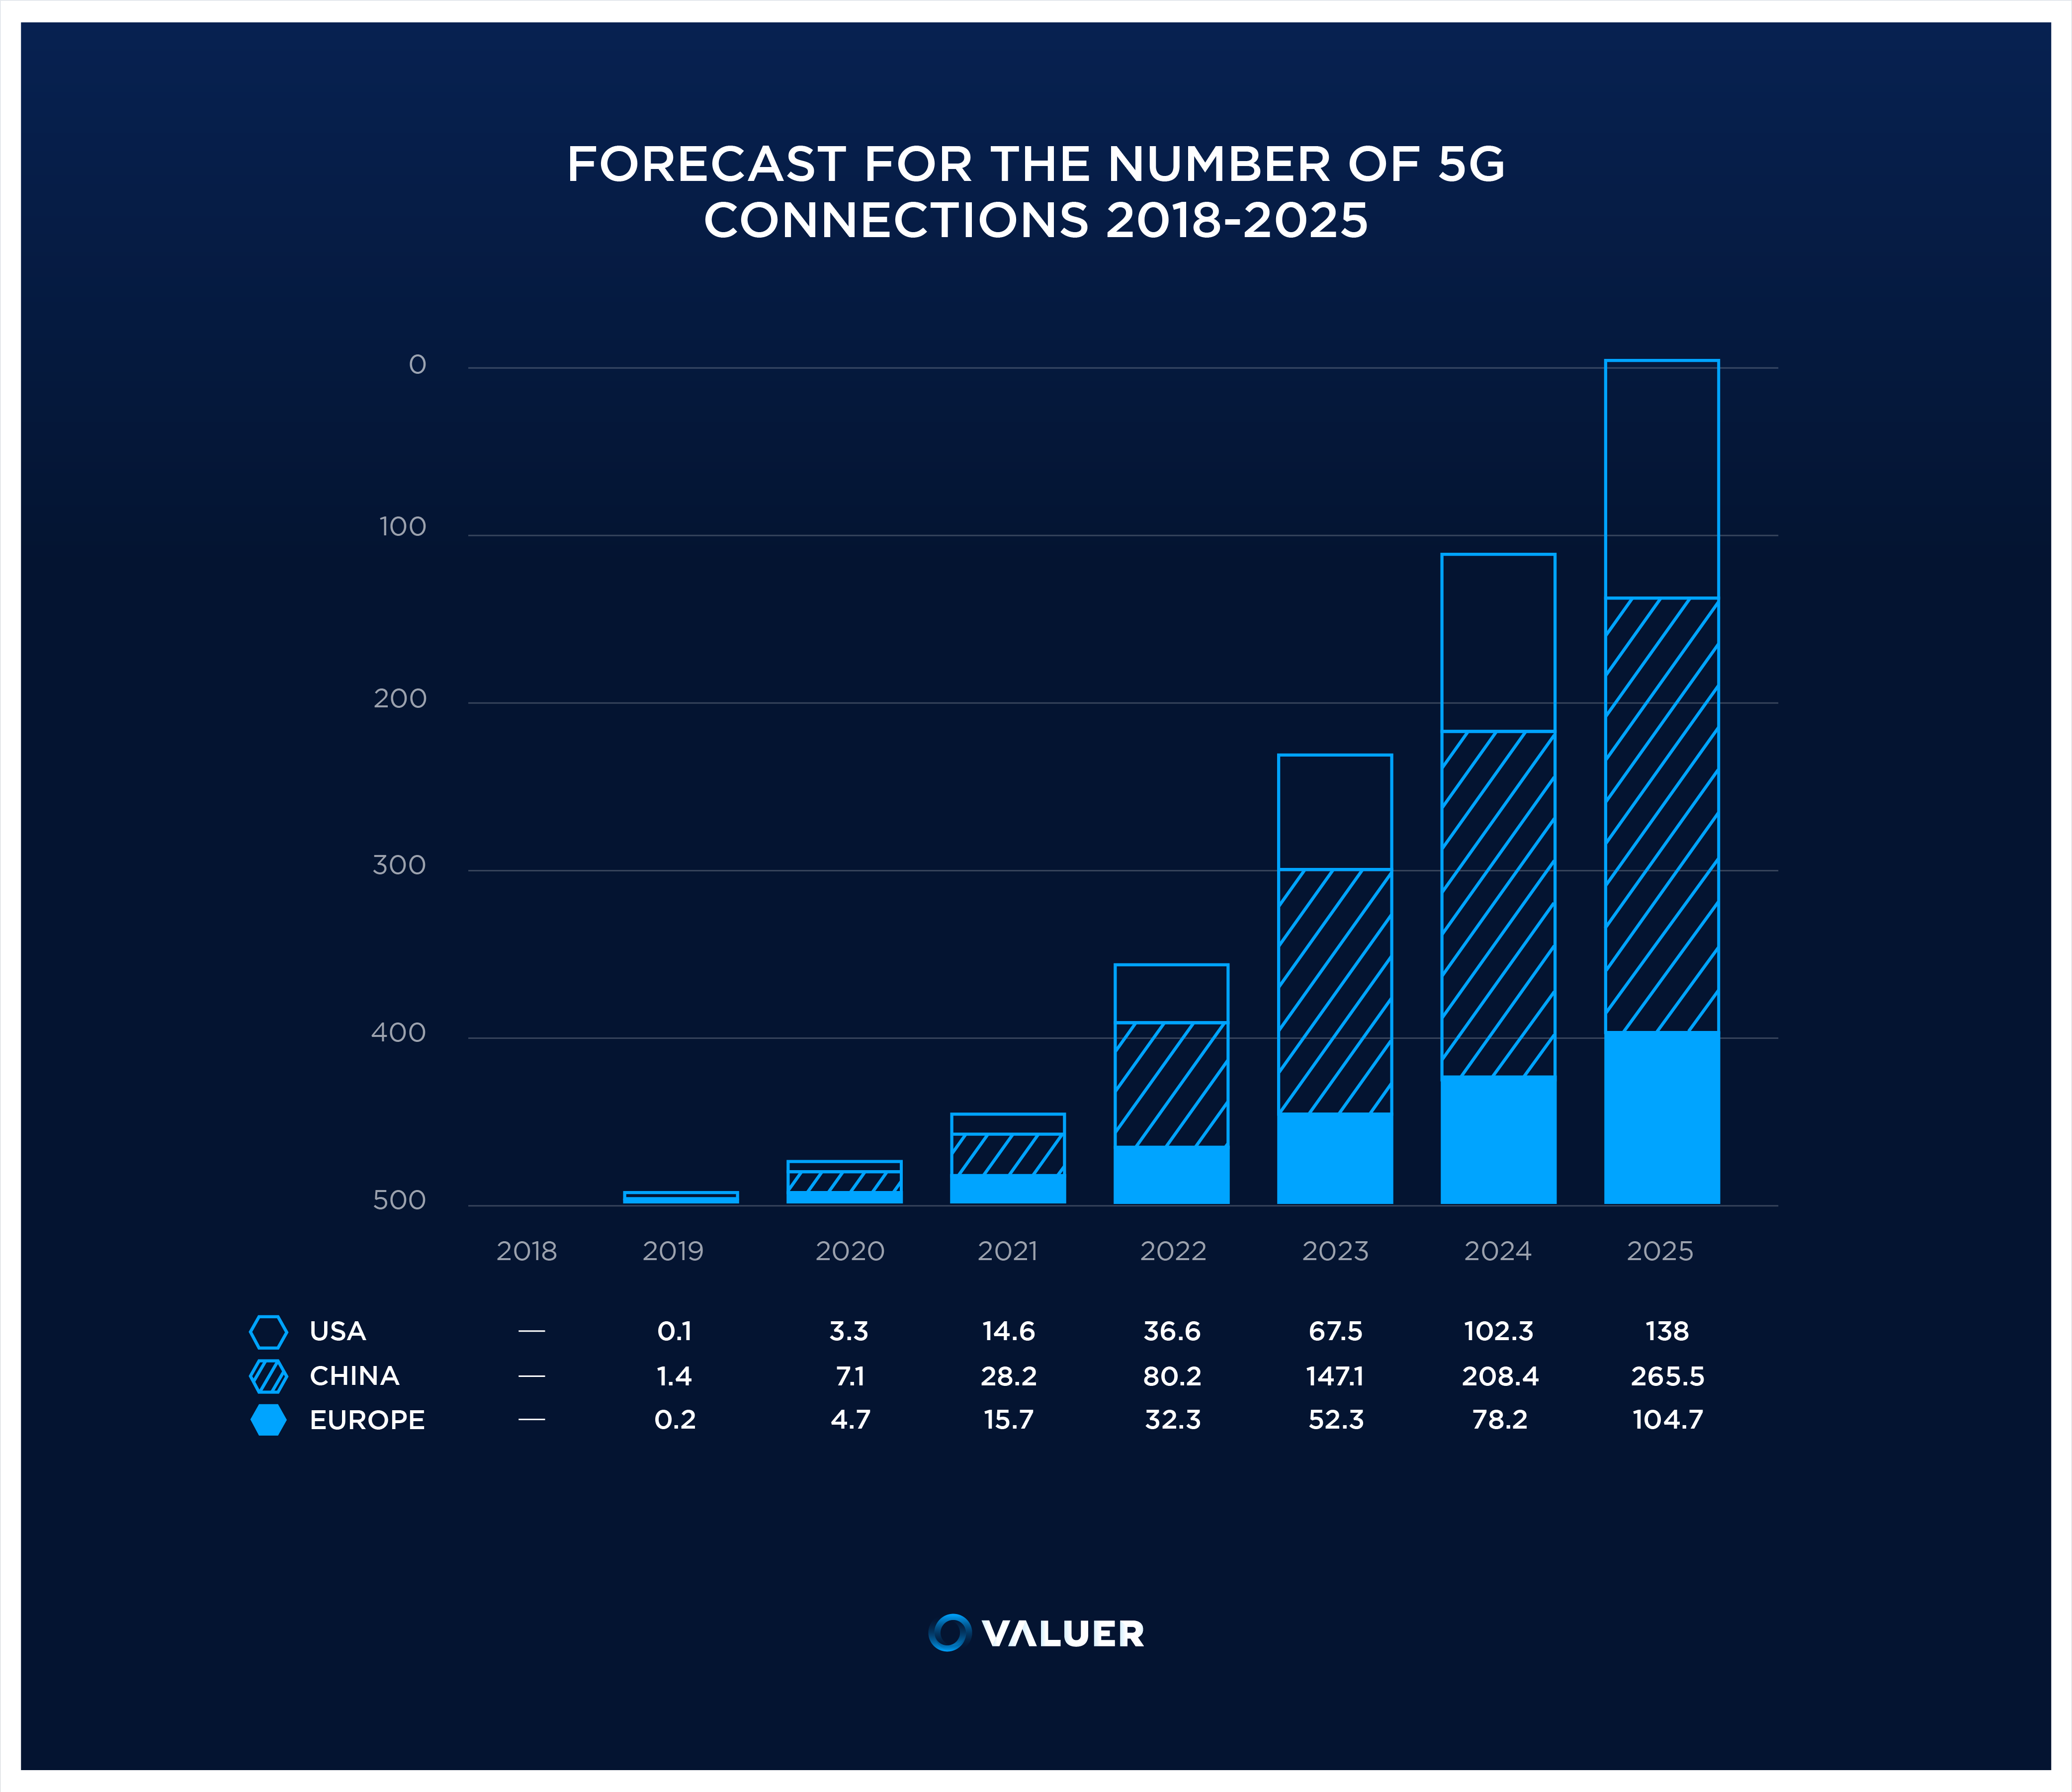 infographic bar graph forecast of number of 5G connections from 2018-2025